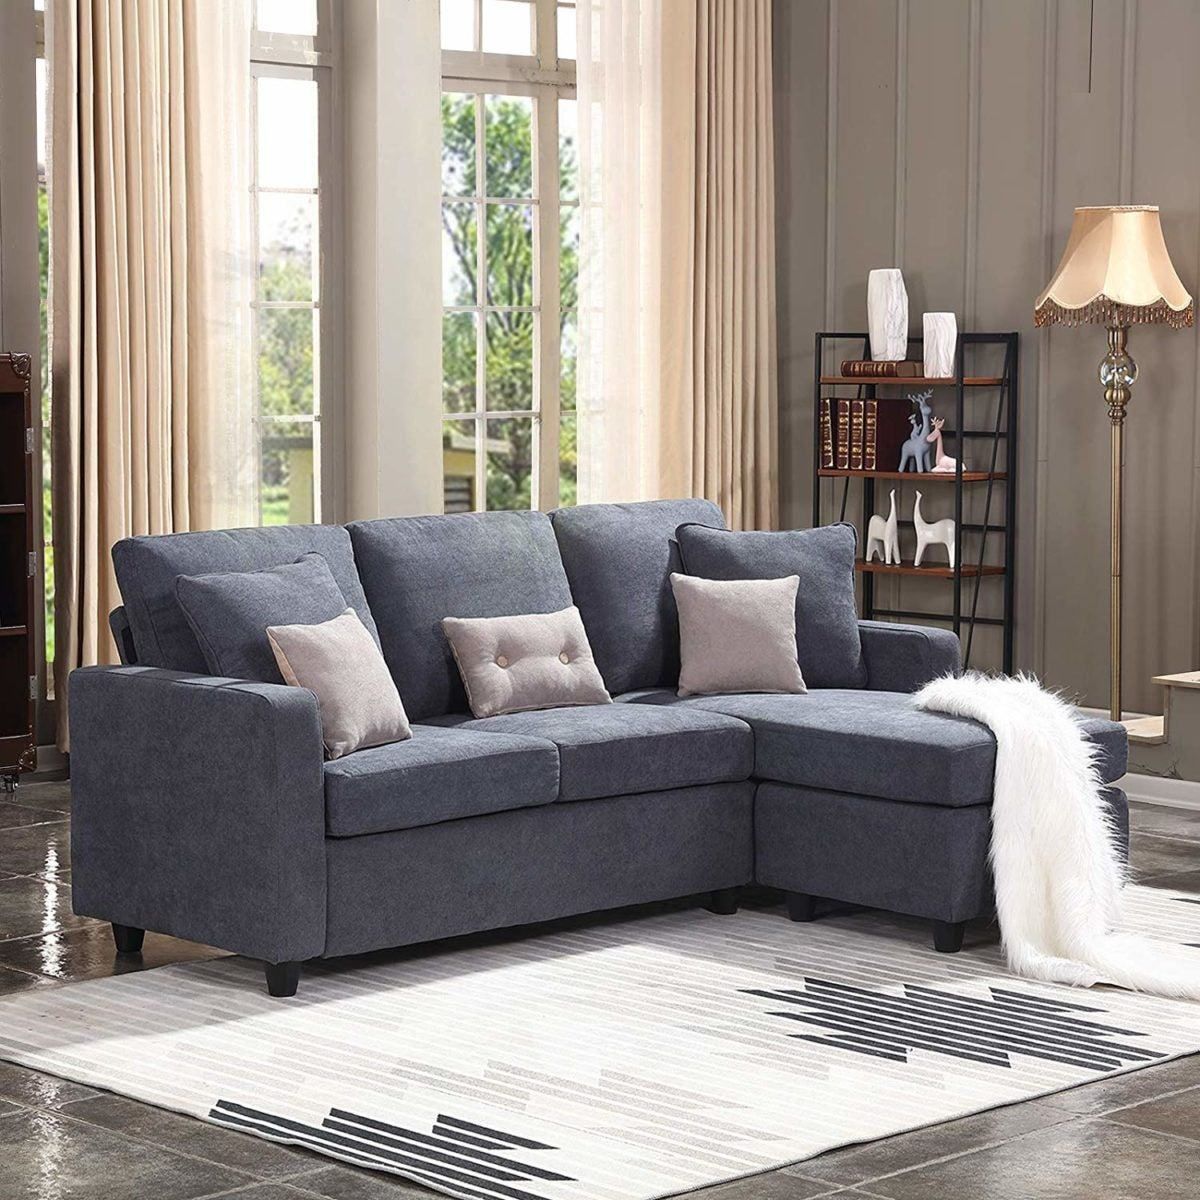 These Chic Couches Under 700 Are Perfect For Your Small